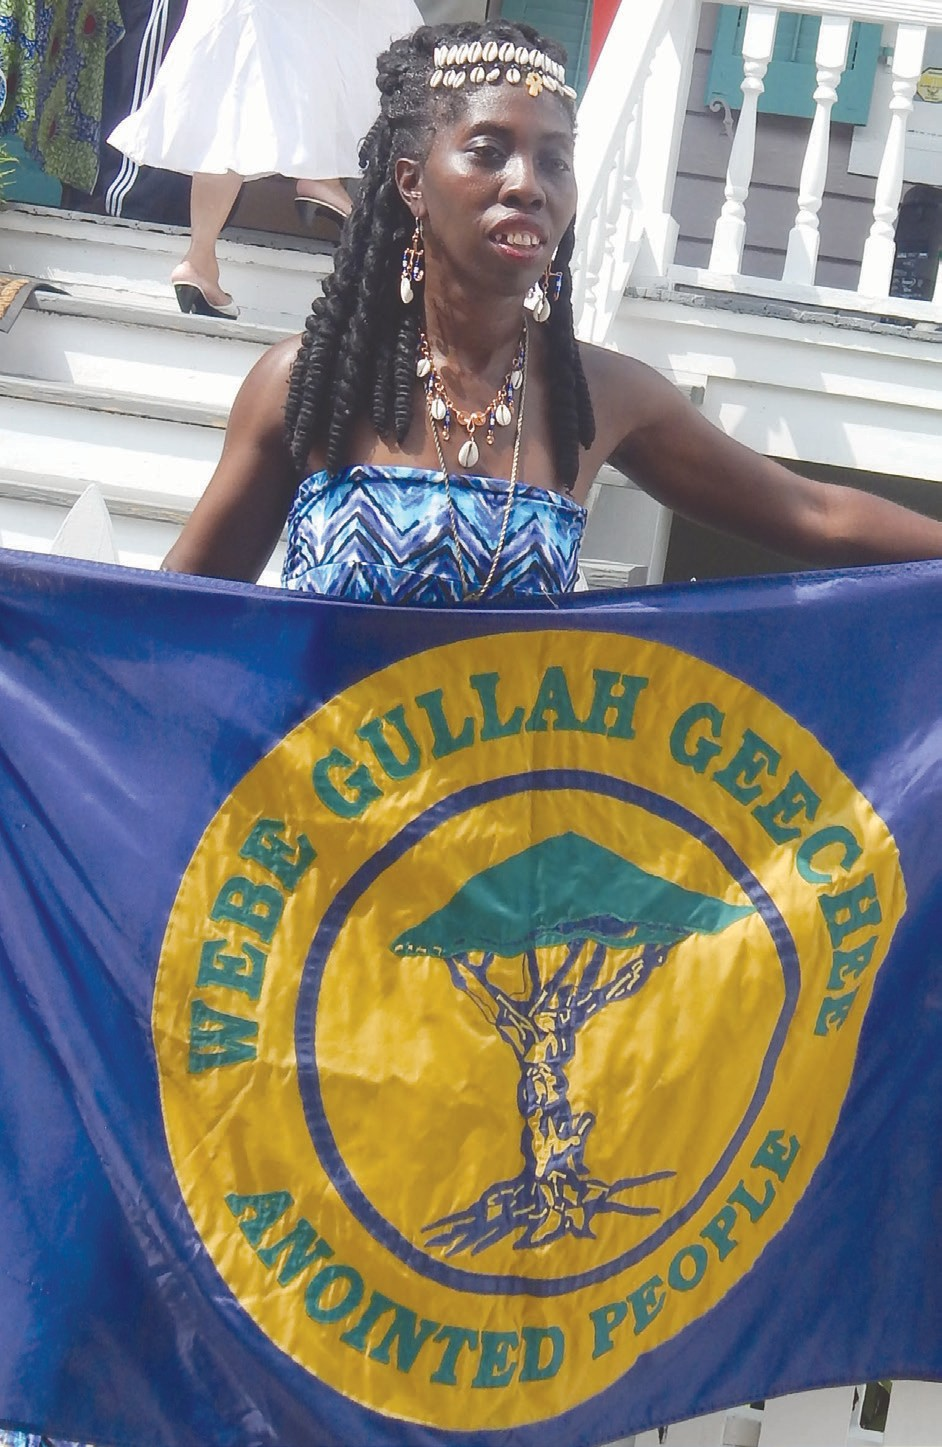 Gullah/Geechee Nation International Music and Movement Festival will be held Friday - Sunday, August 1-3 in Charleston and Myrtle Beach, S. C. For more information visit Gullah/Geechee Nation International Music & Movement Festival 2013 or call (843) 838-1171.